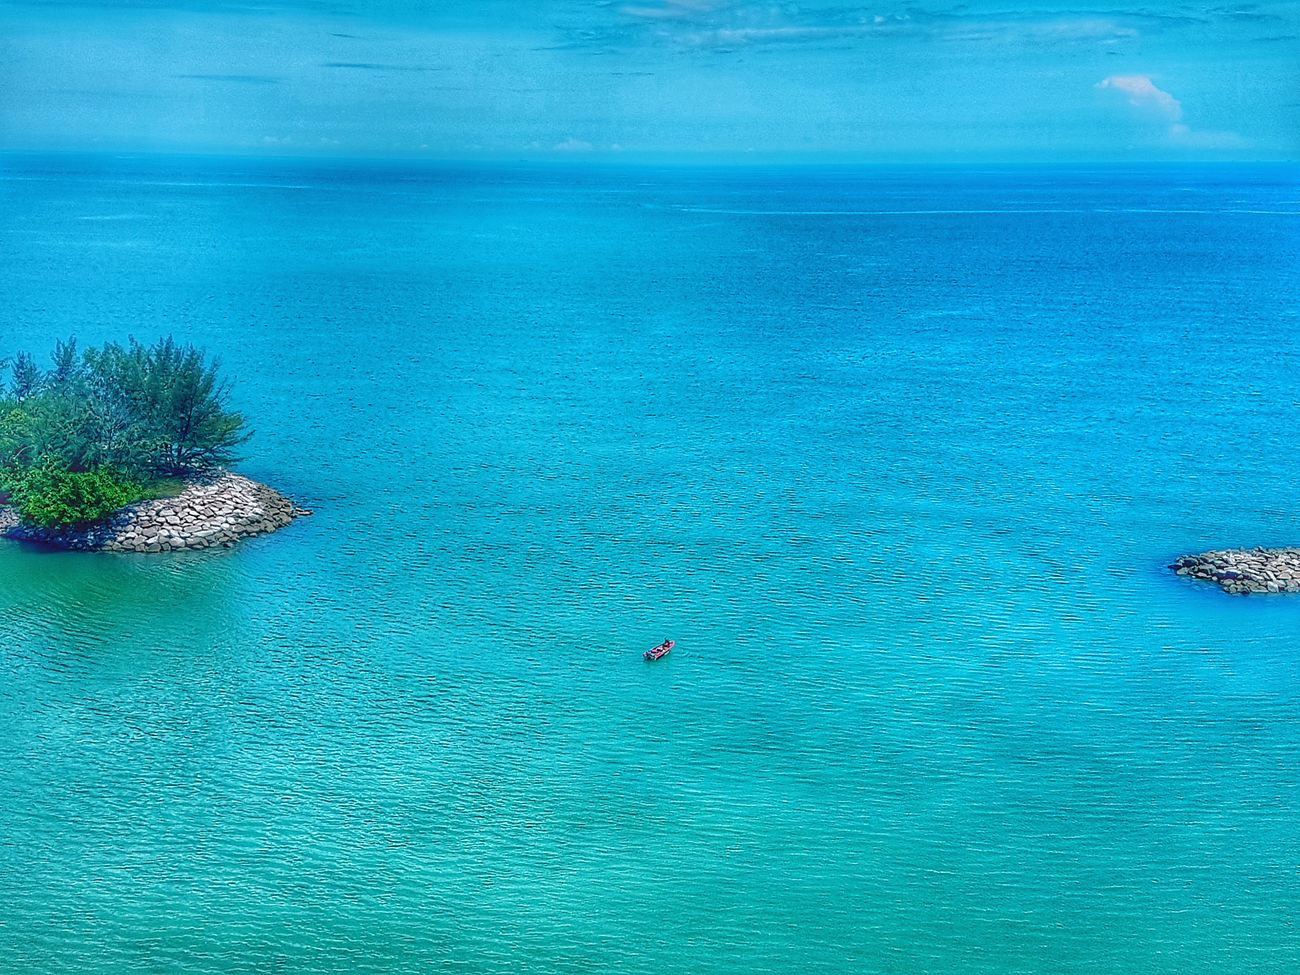 Sea Water High Angle View Beach Blue Day Scenics Nature Aerial View Outdoors Beauty In Nature Tranquil Scene Tranquility No People Summer Horizon Over Water UnderSea Turquoise Nature Photography Travel Photography Lost At Sea Alone Lonely Nature Pastel